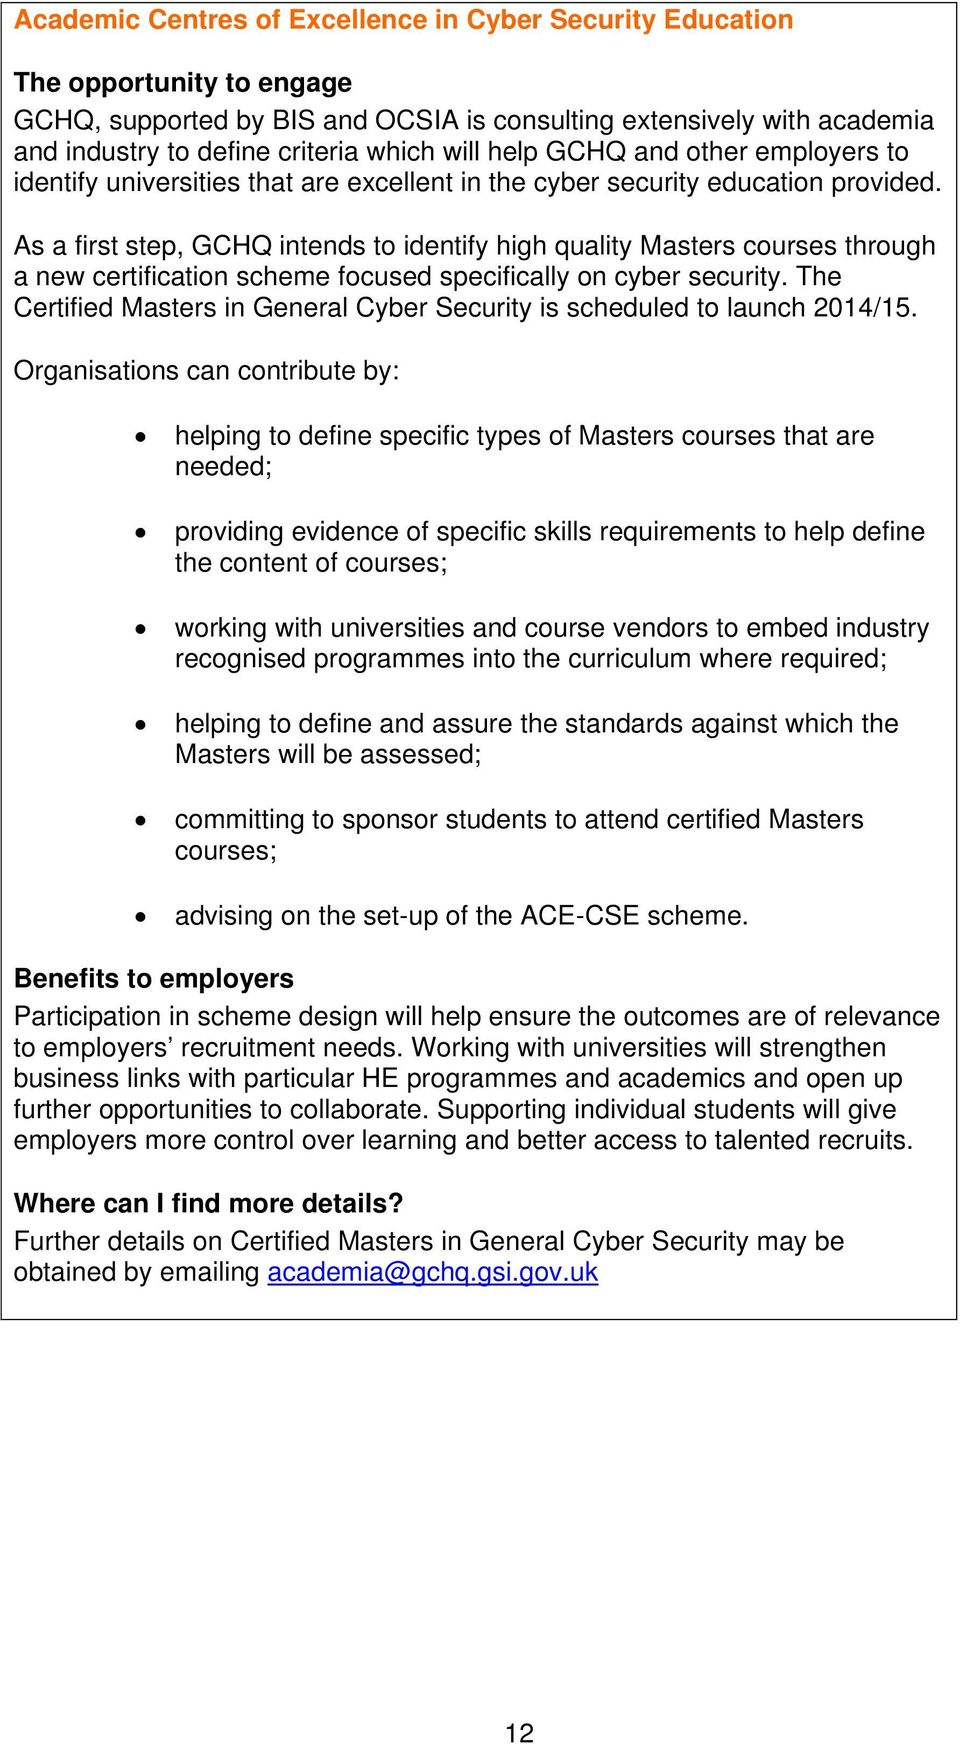 As a first step, GCHQ intends to identify high quality Masters courses through a new certification scheme focused specifically on cyber security.